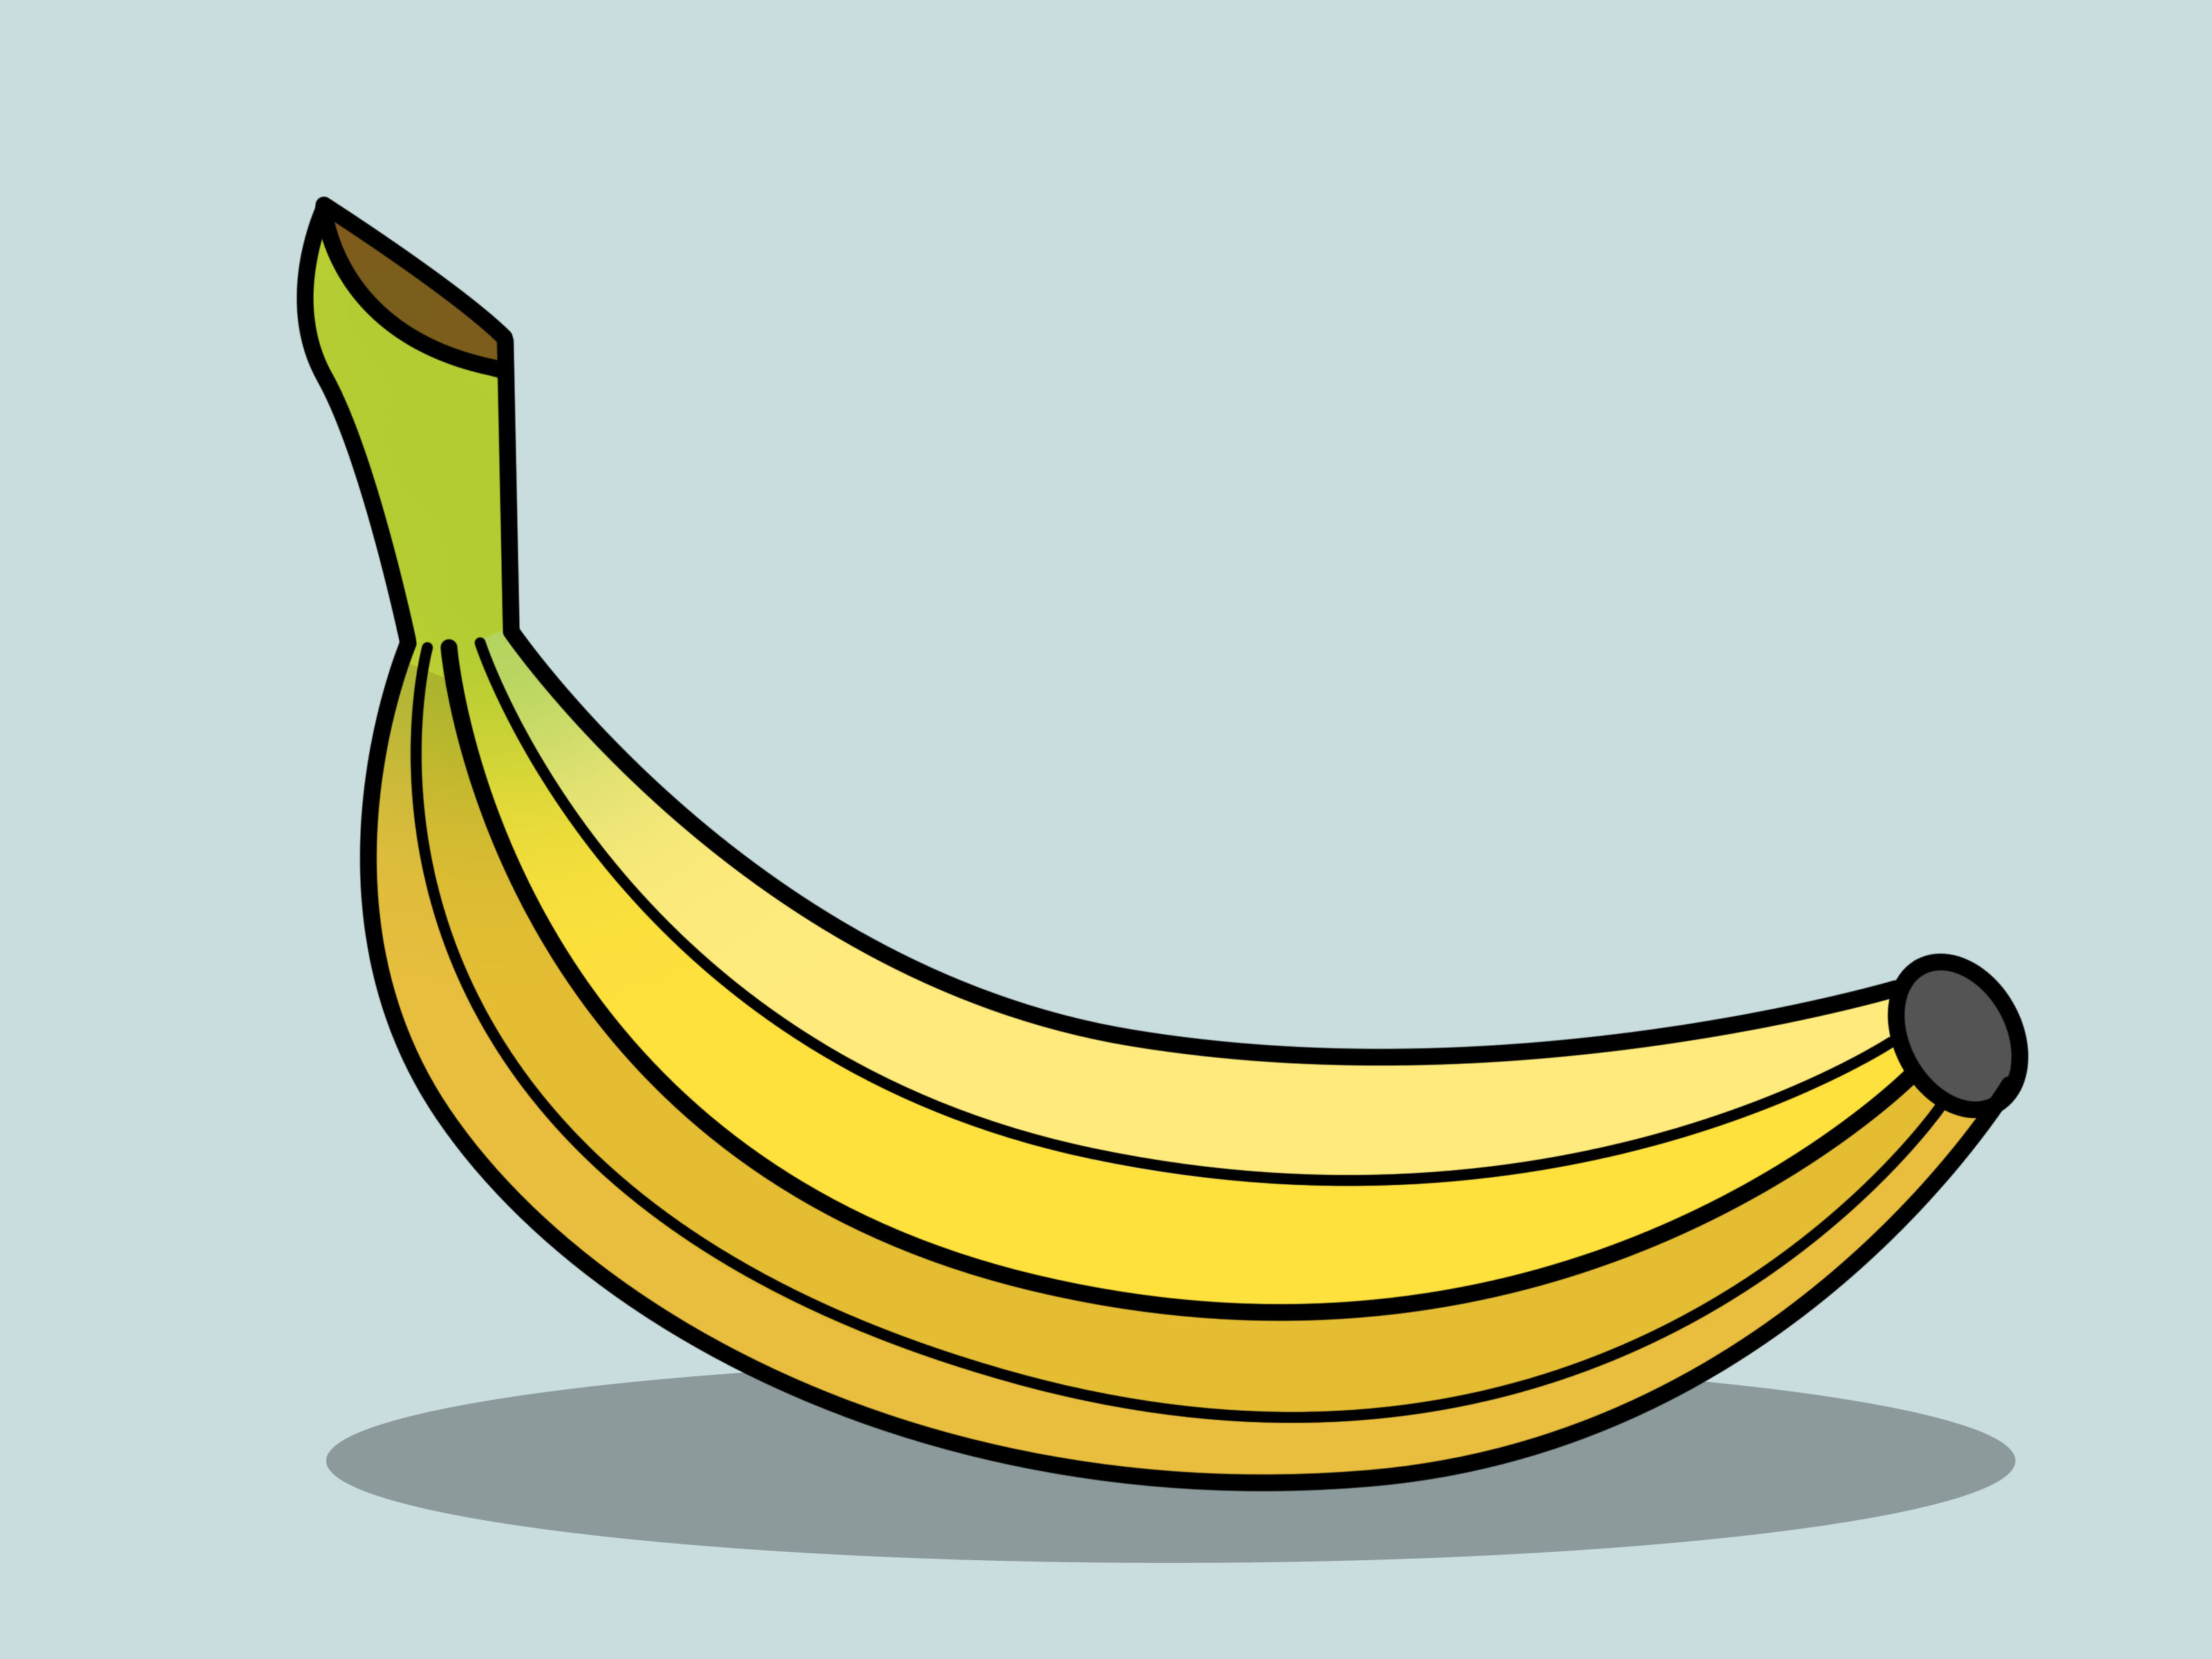 Banana clipart banana drawing. For kids sketch picture